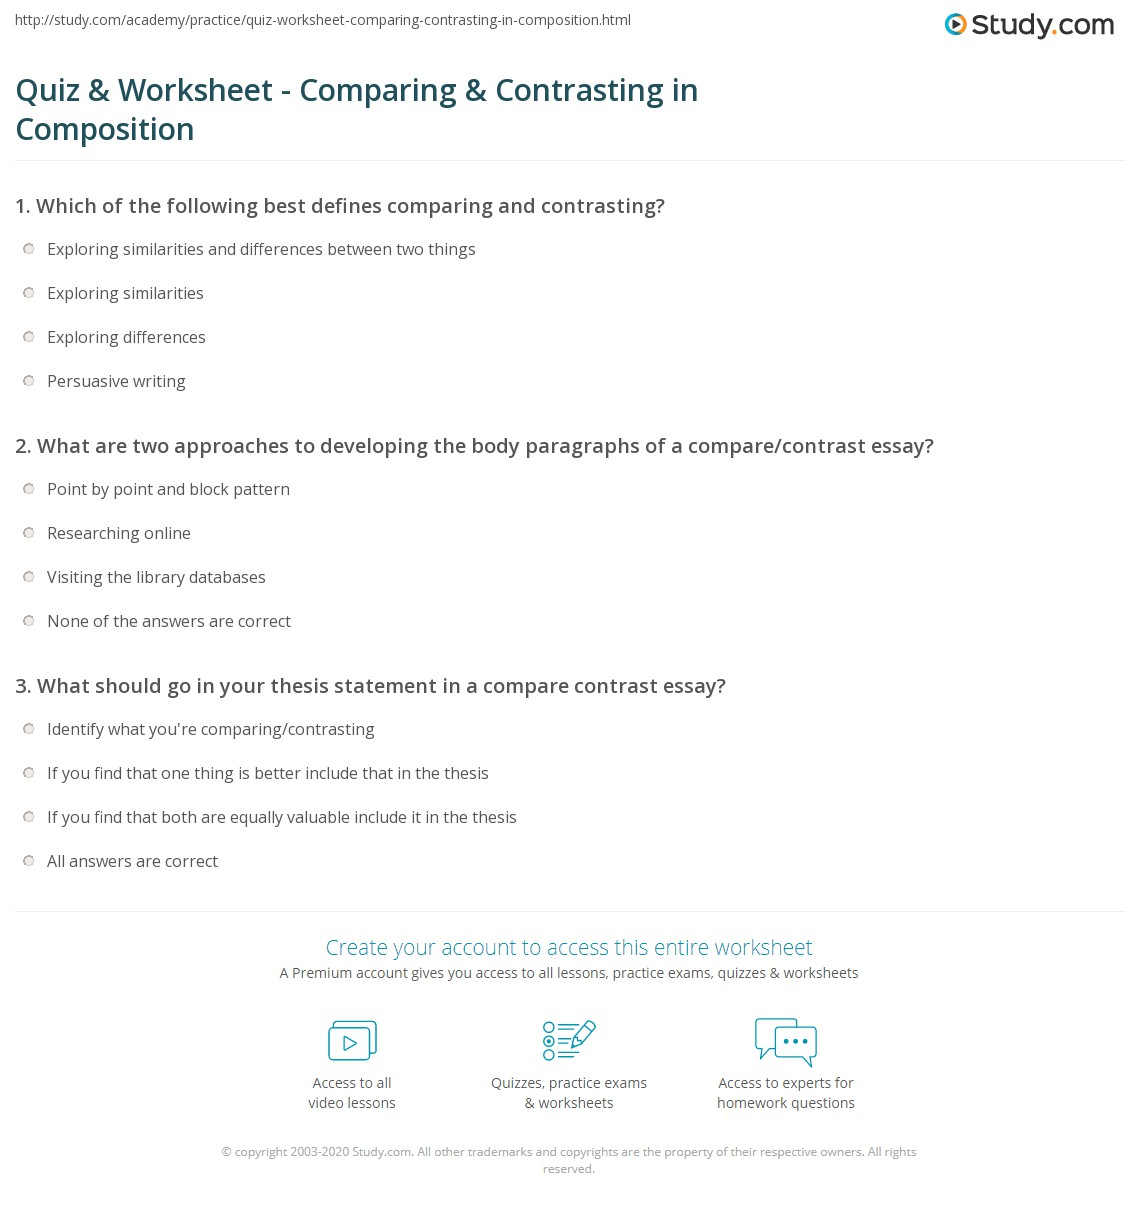 quiz  worksheet  comparing  contrasting in composition  studycom what are two approaches to developing the body paragraphs of a comparecontrast  essay